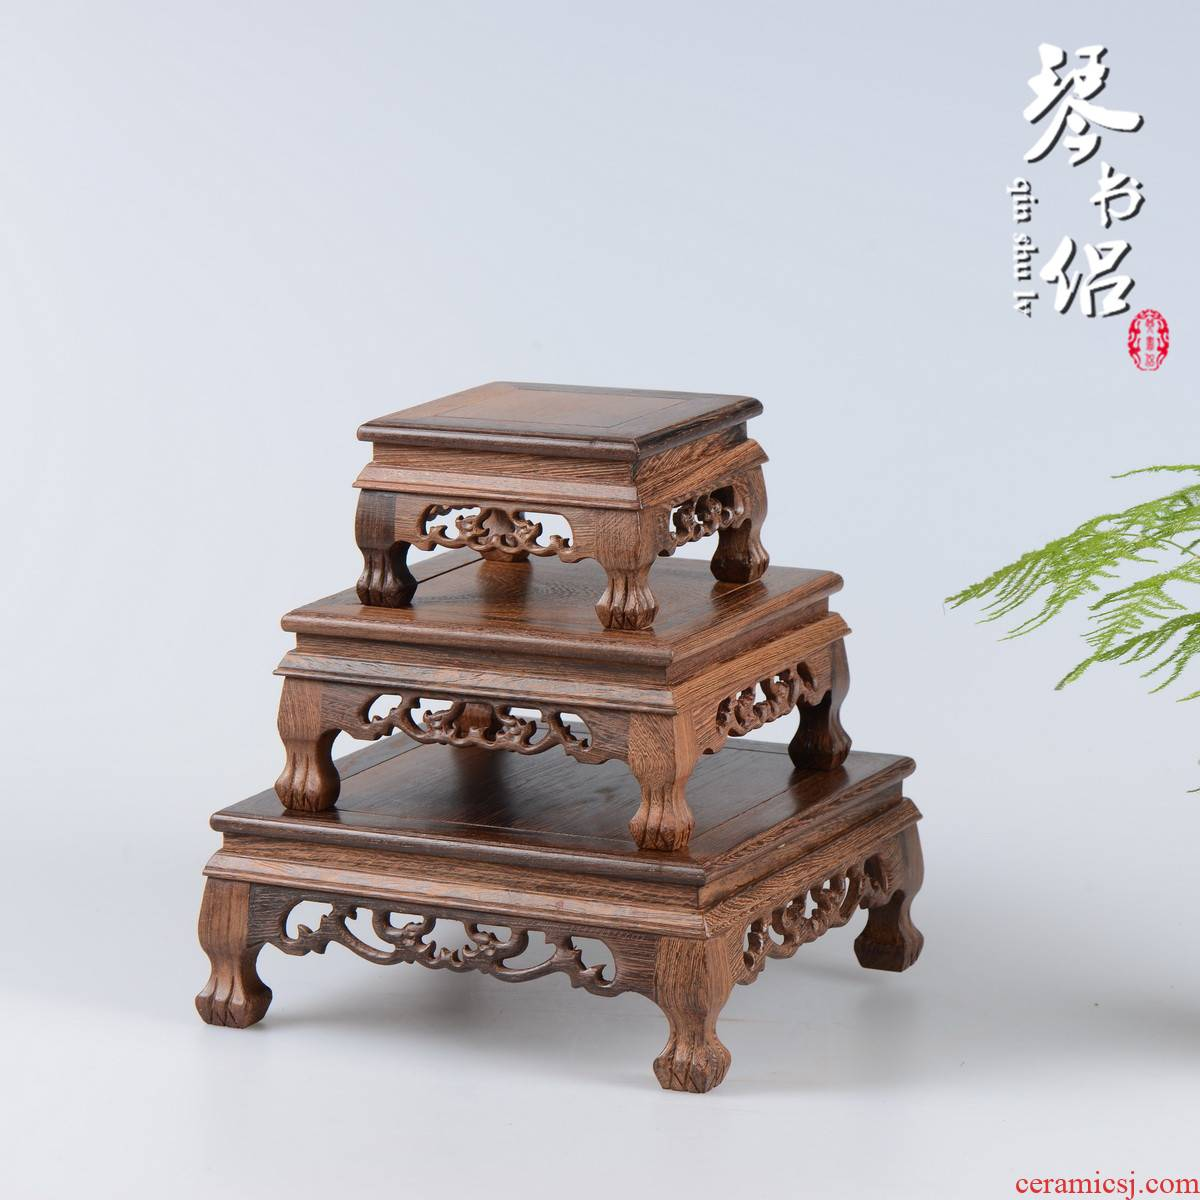 Chicken wings wood crafts square mahogany base it stone, jade antique solid wood antique porcelain base